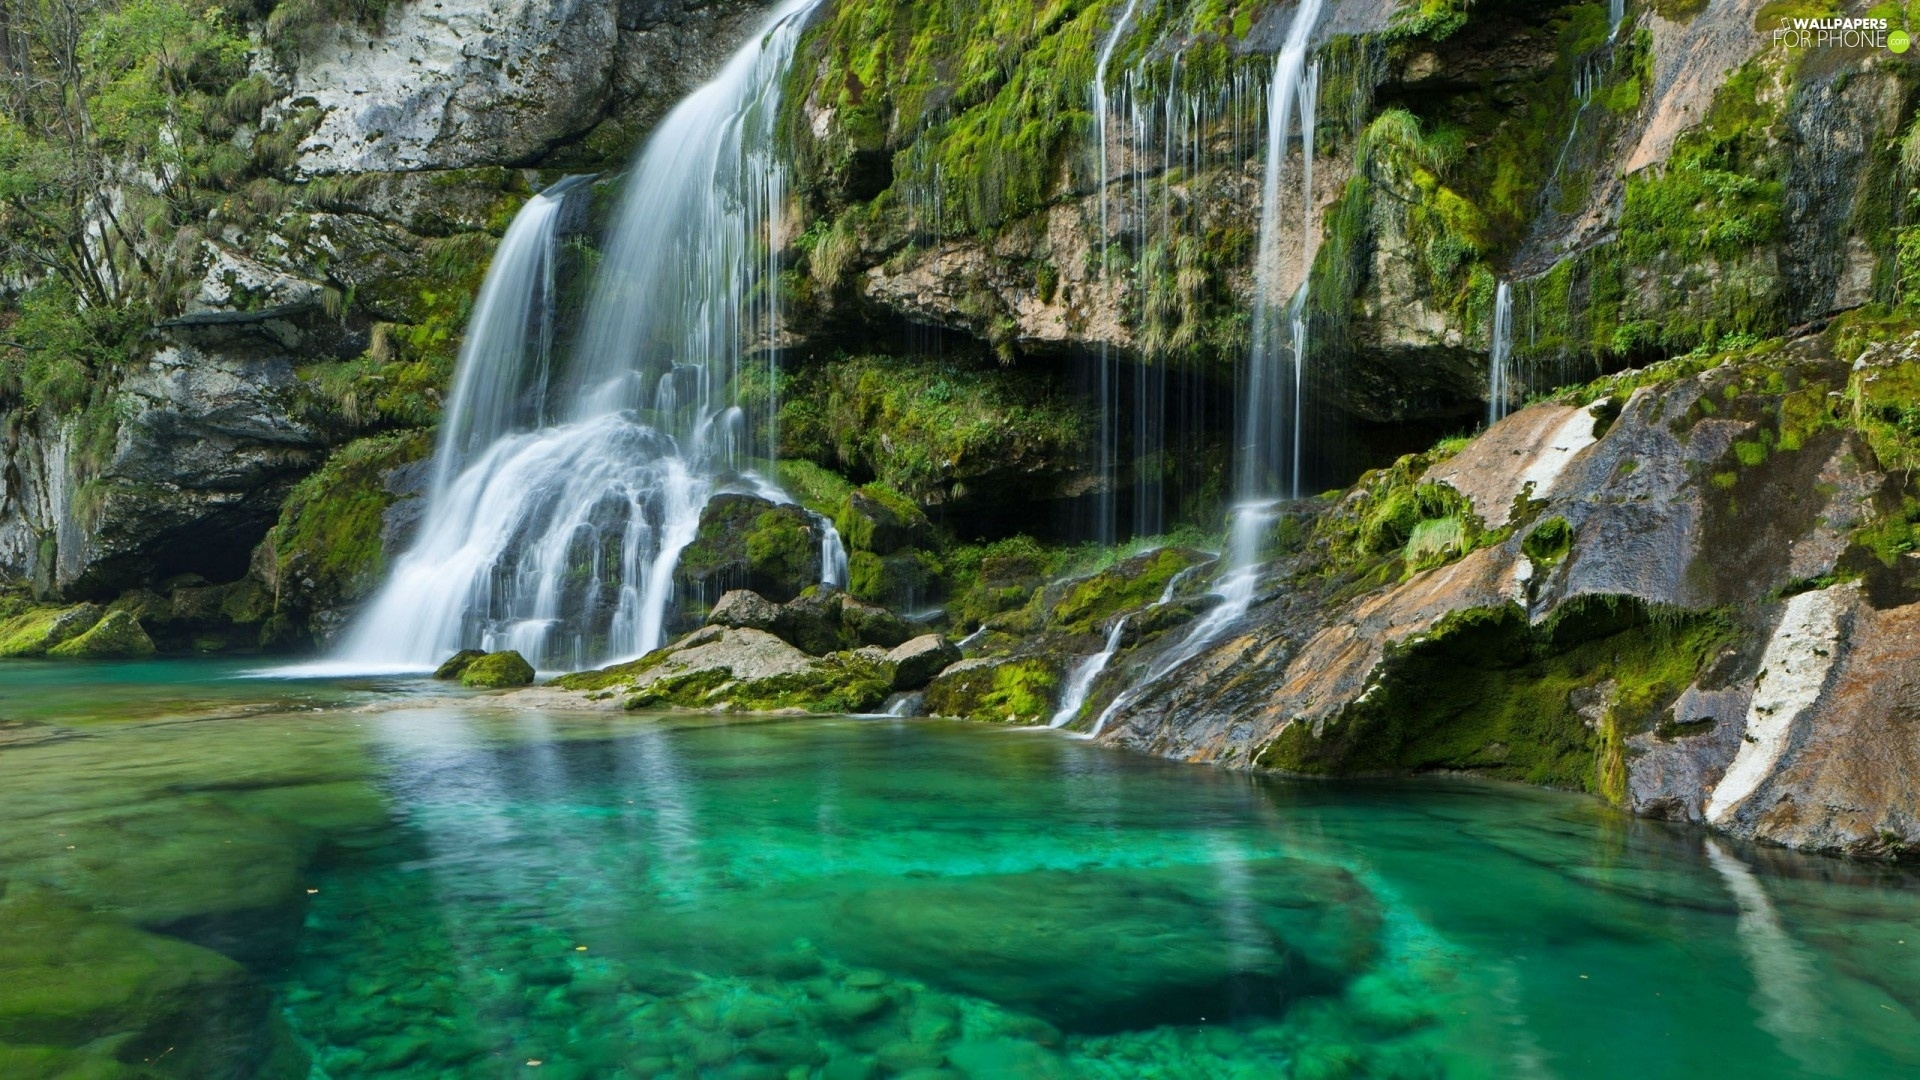 waterfalls desktop wallpaper lake - photo #12